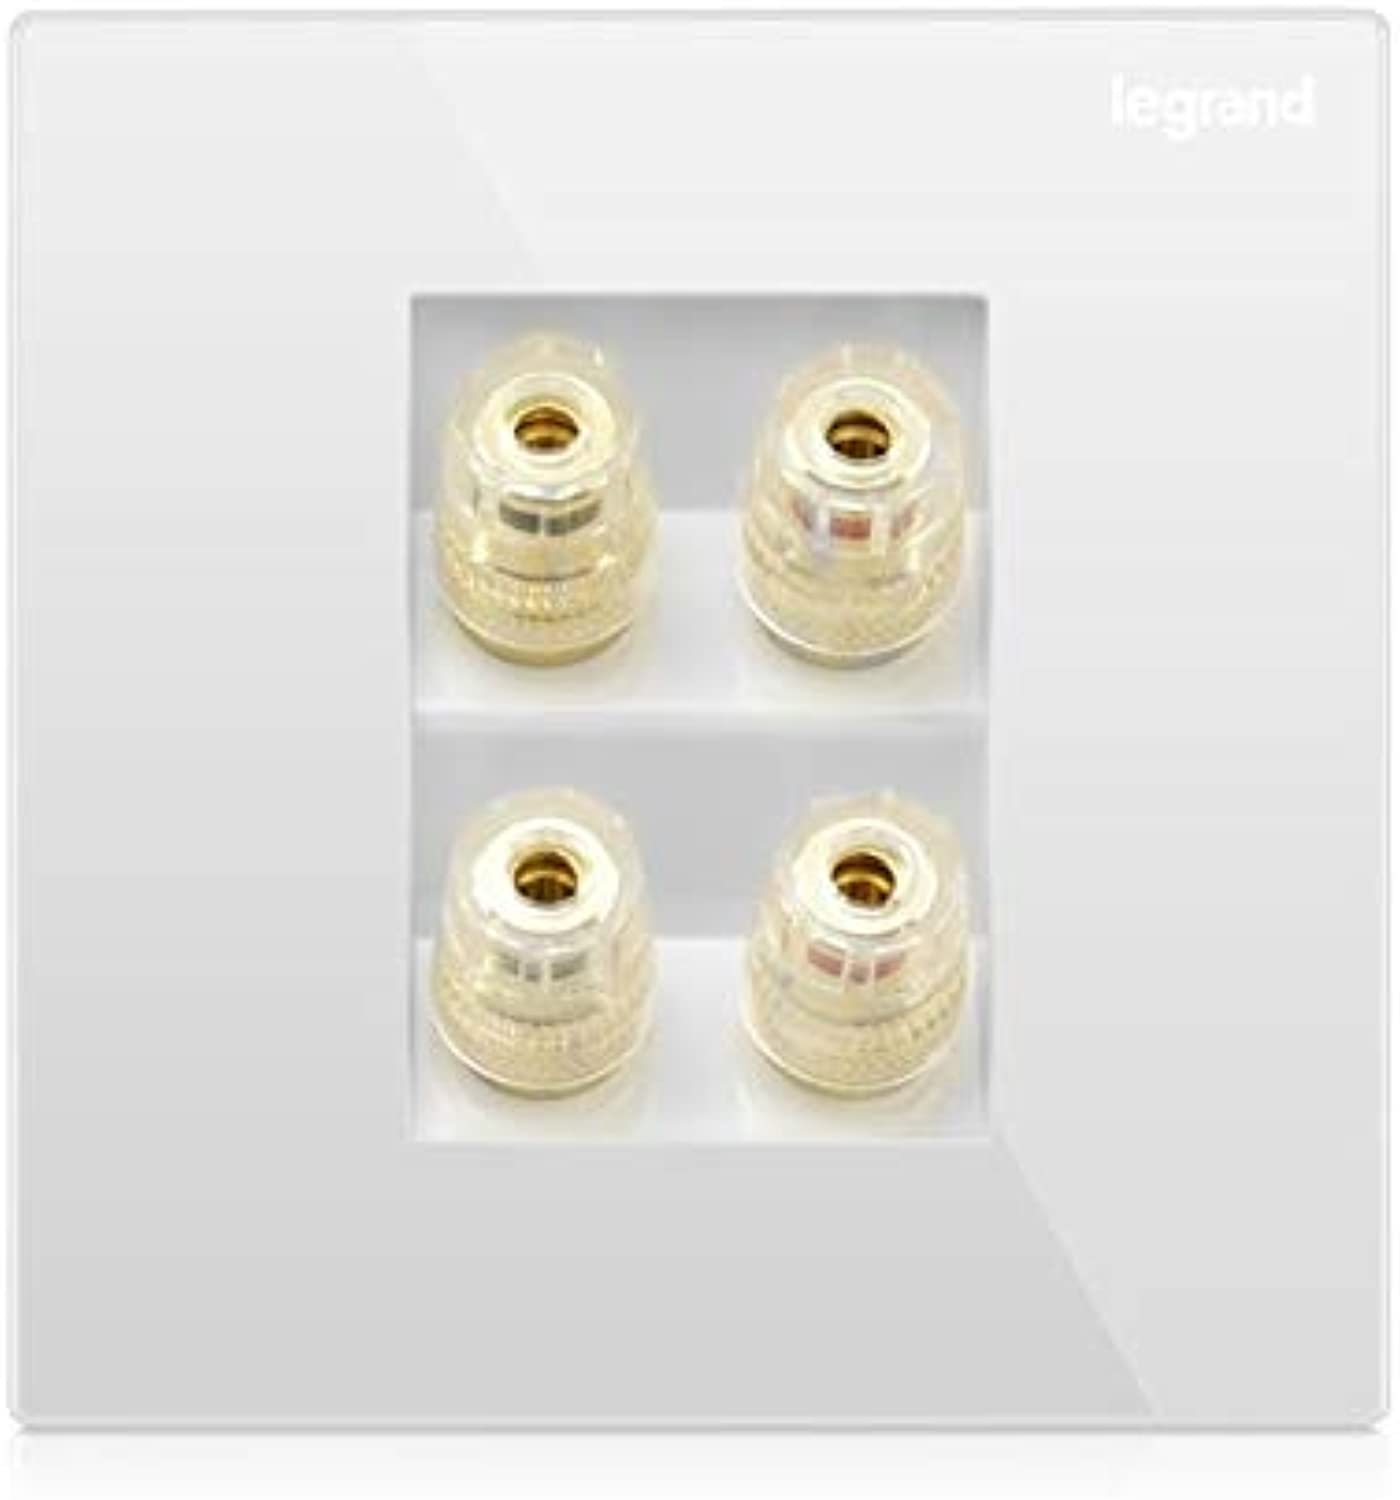 High Quality Audio Wall Socket Four Interfaces Large Panel 86type Wall Switch Socket Simple Classic White and gold  (color  White)